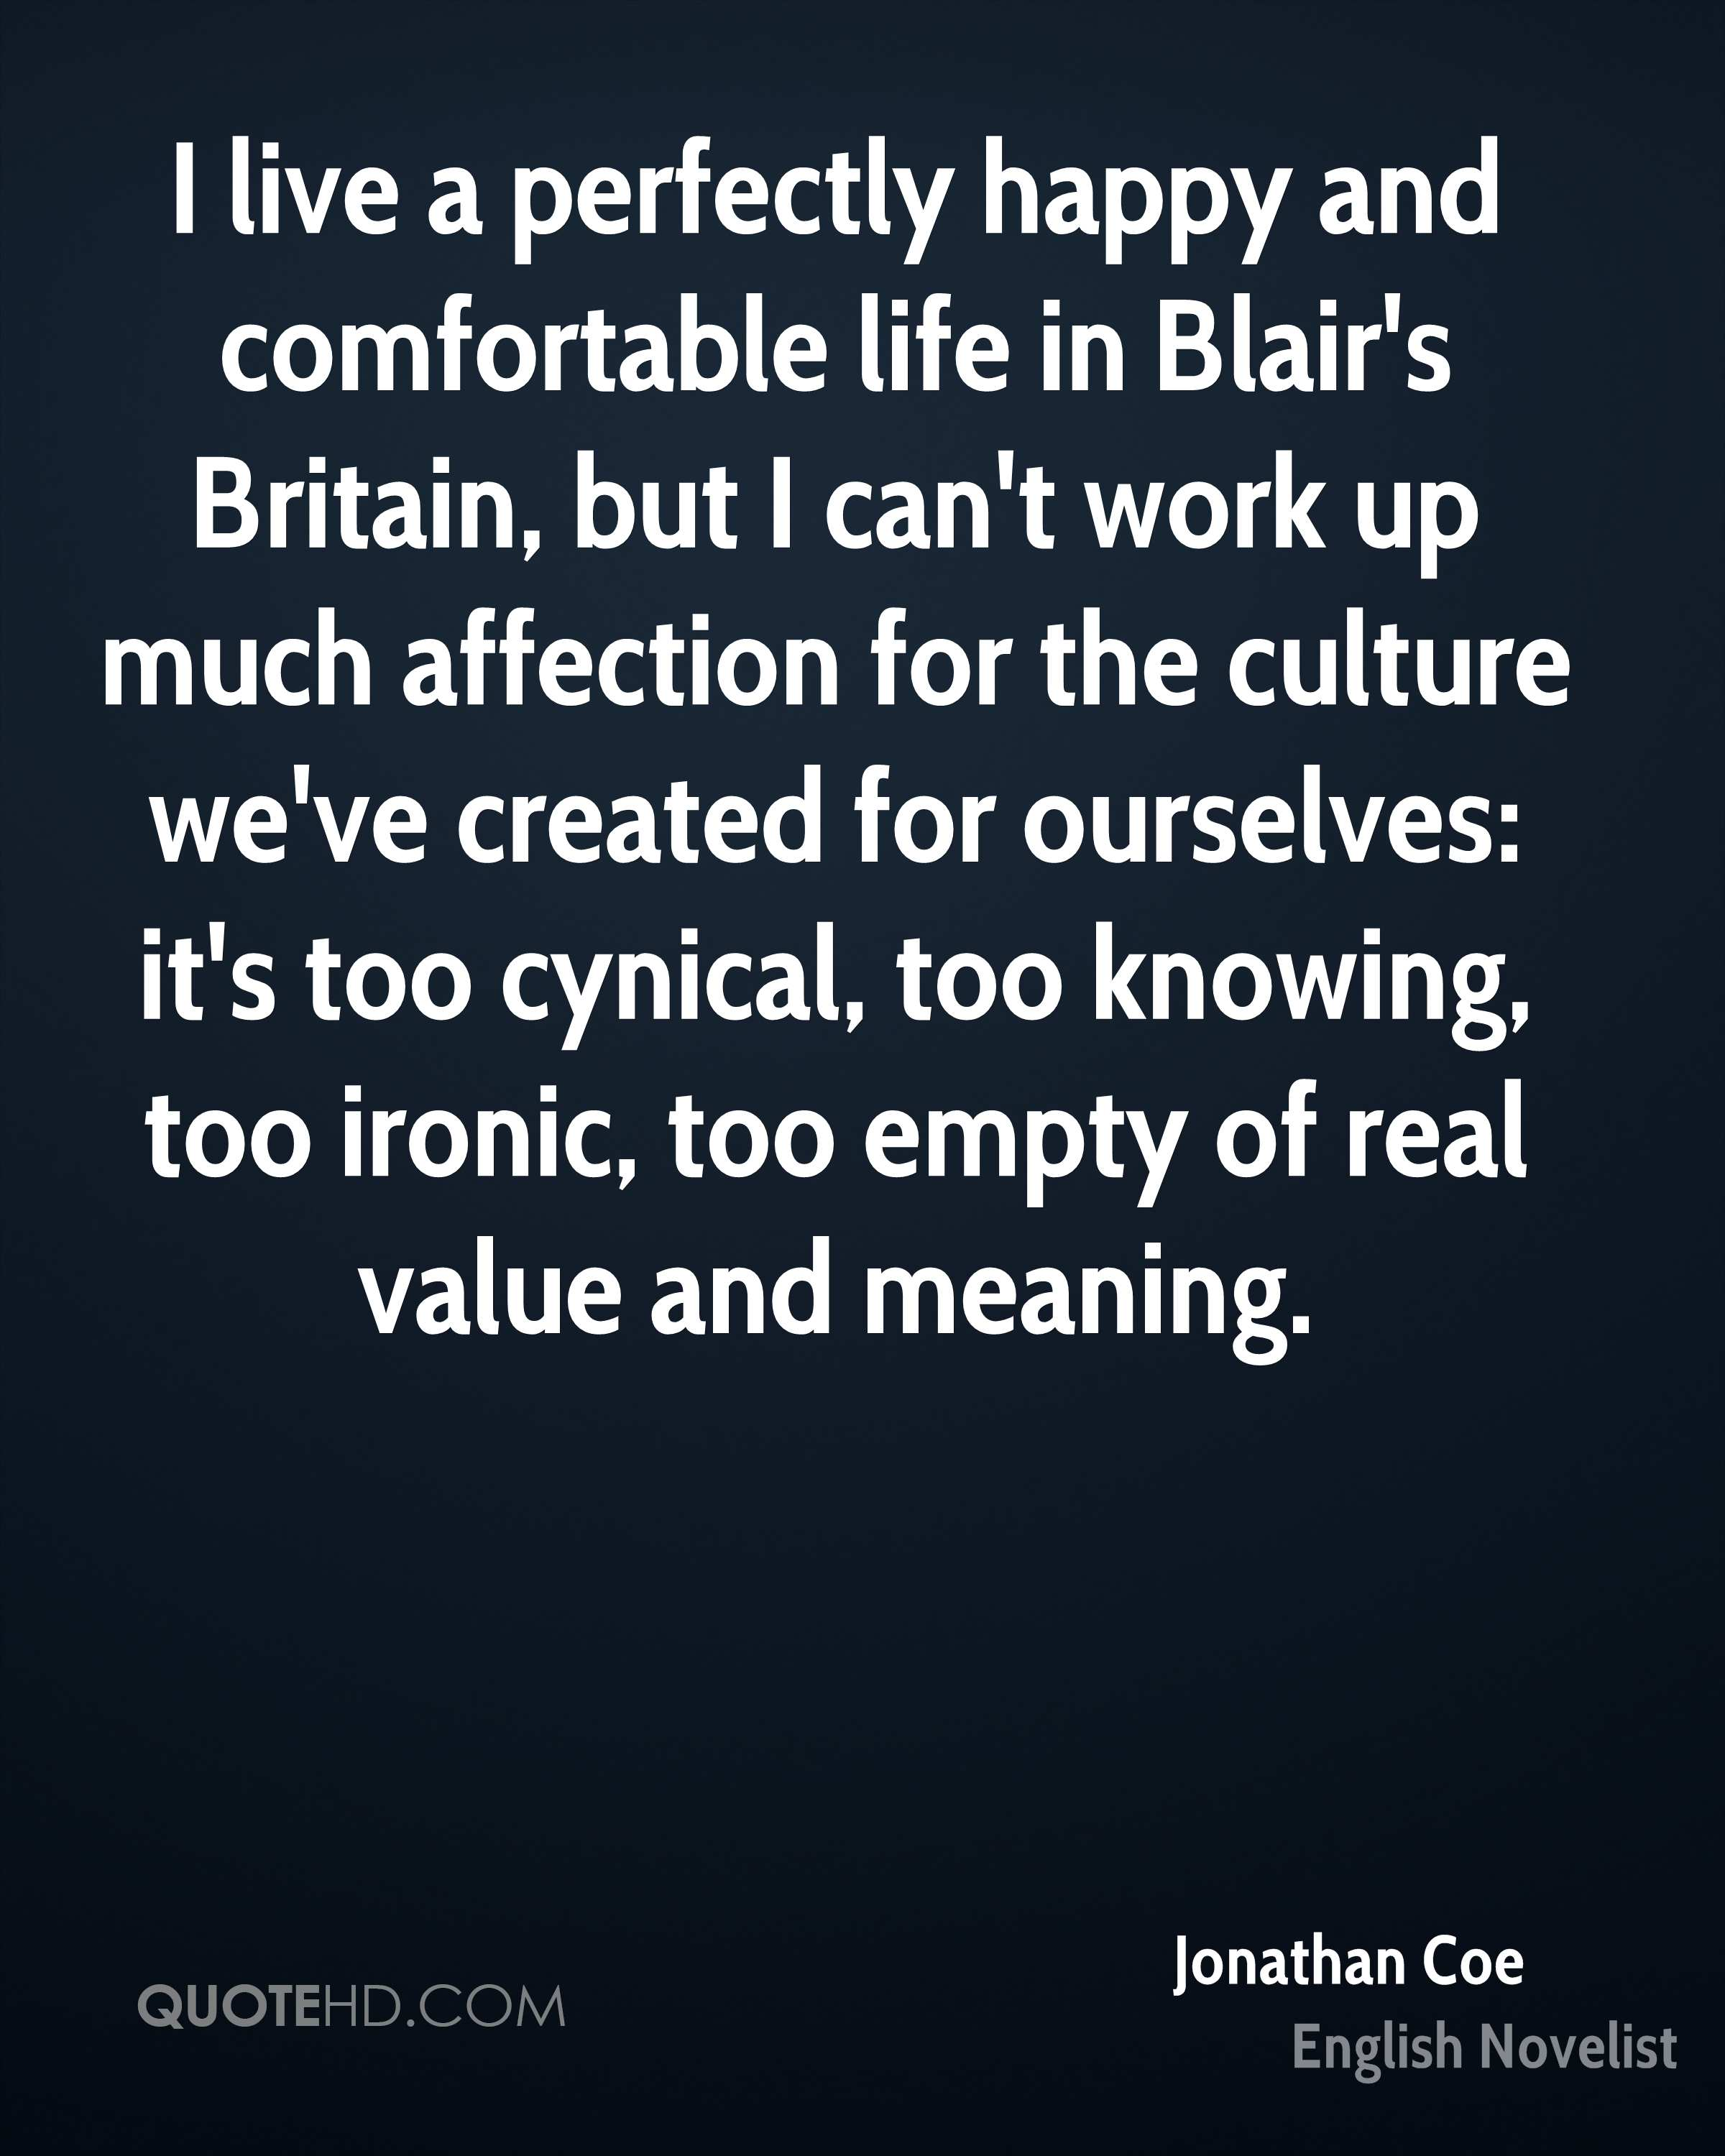 I live a perfectly happy and comfortable life in Blair's Britain, but I can't work up much affection for the culture we've created for ourselves: it's too cynical, too knowing, too ironic, too empty of real value and meaning.